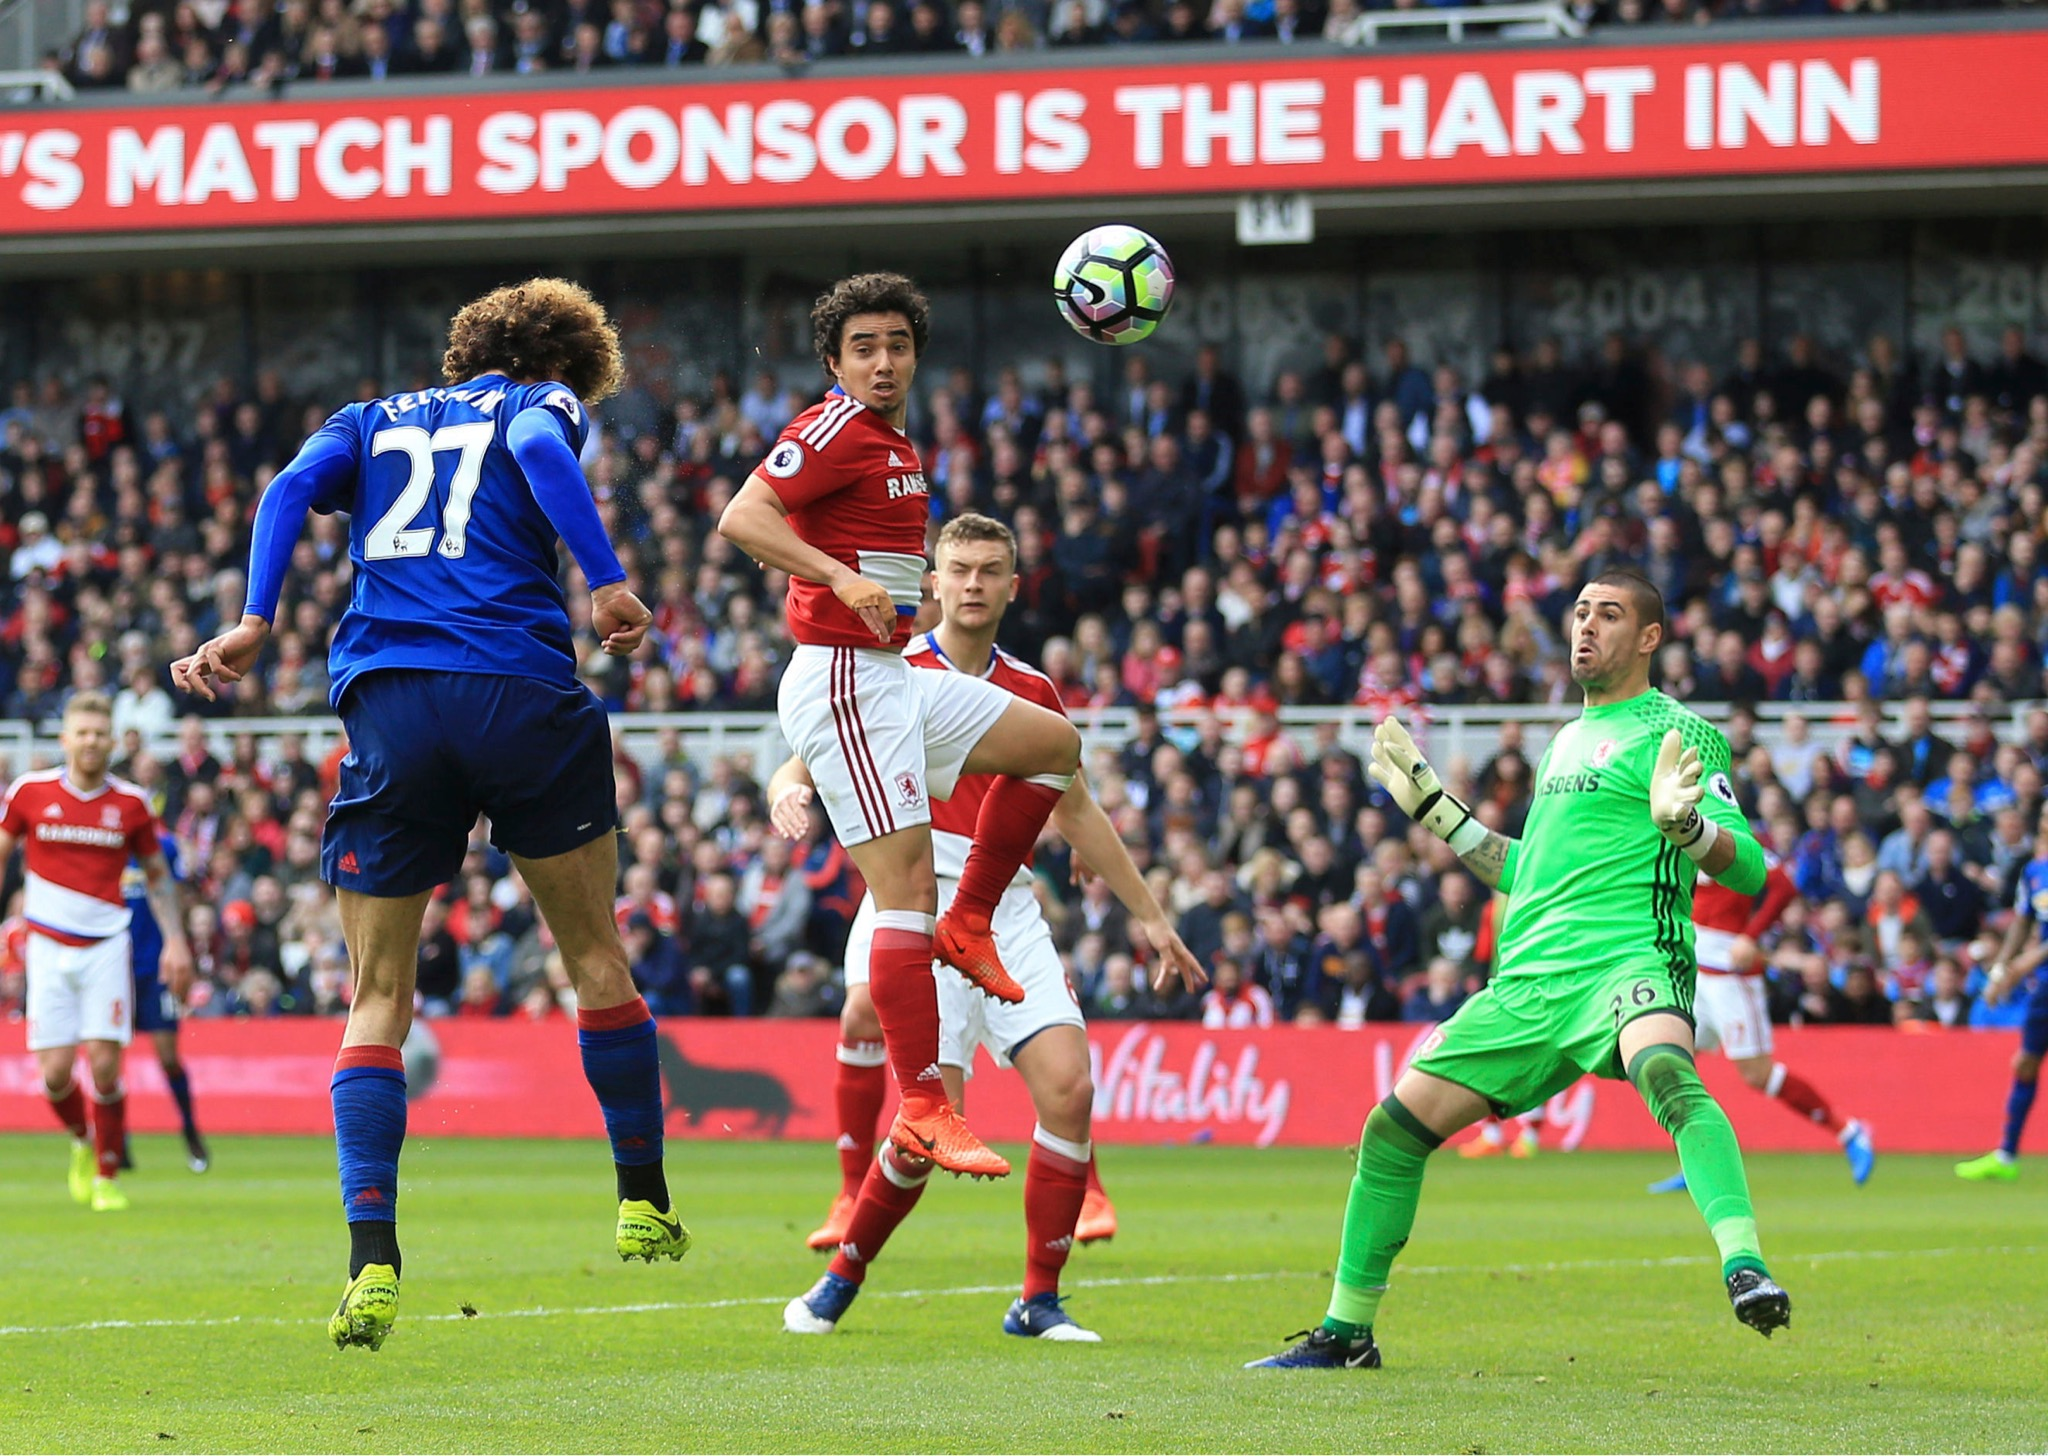 Manchester United's Marouane Fellaini, left, scores his side's first goal of their EPL game against Middlesbrough at the Riverside Stadium in Middlesbrough, Sunday, March 19. (Nigel French/PA via AP)